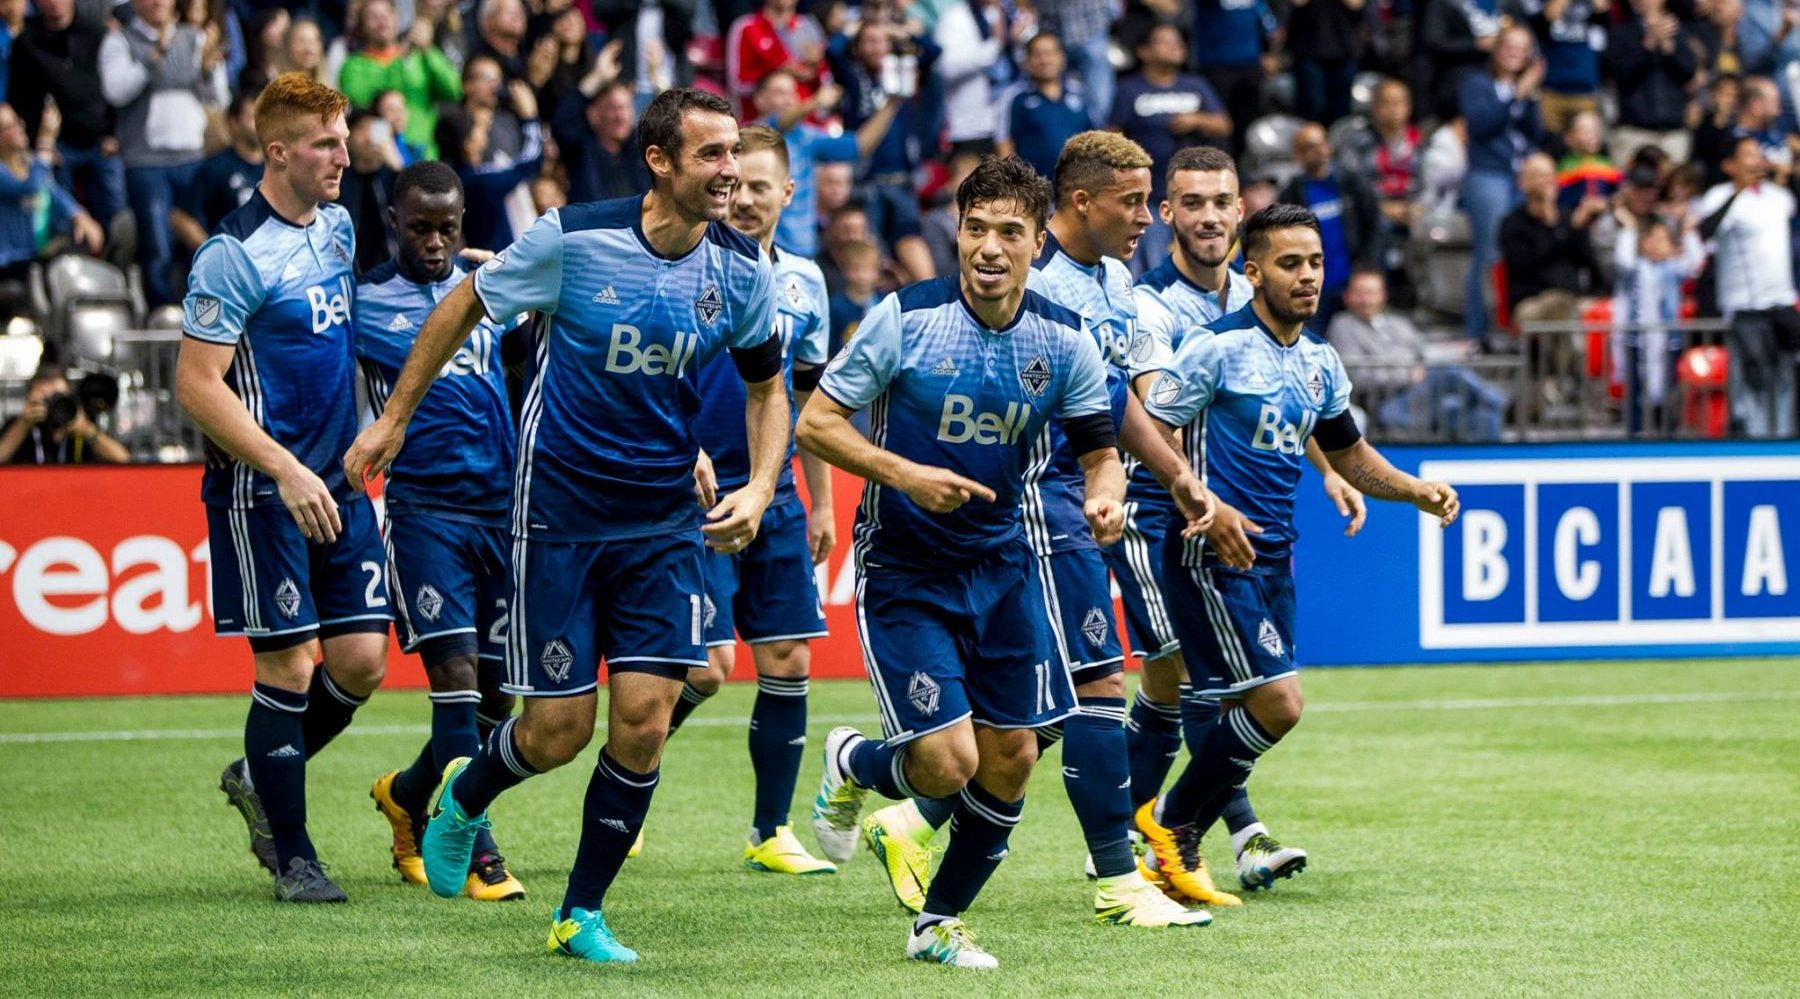 Whitecaps goal celebration e1466792907377